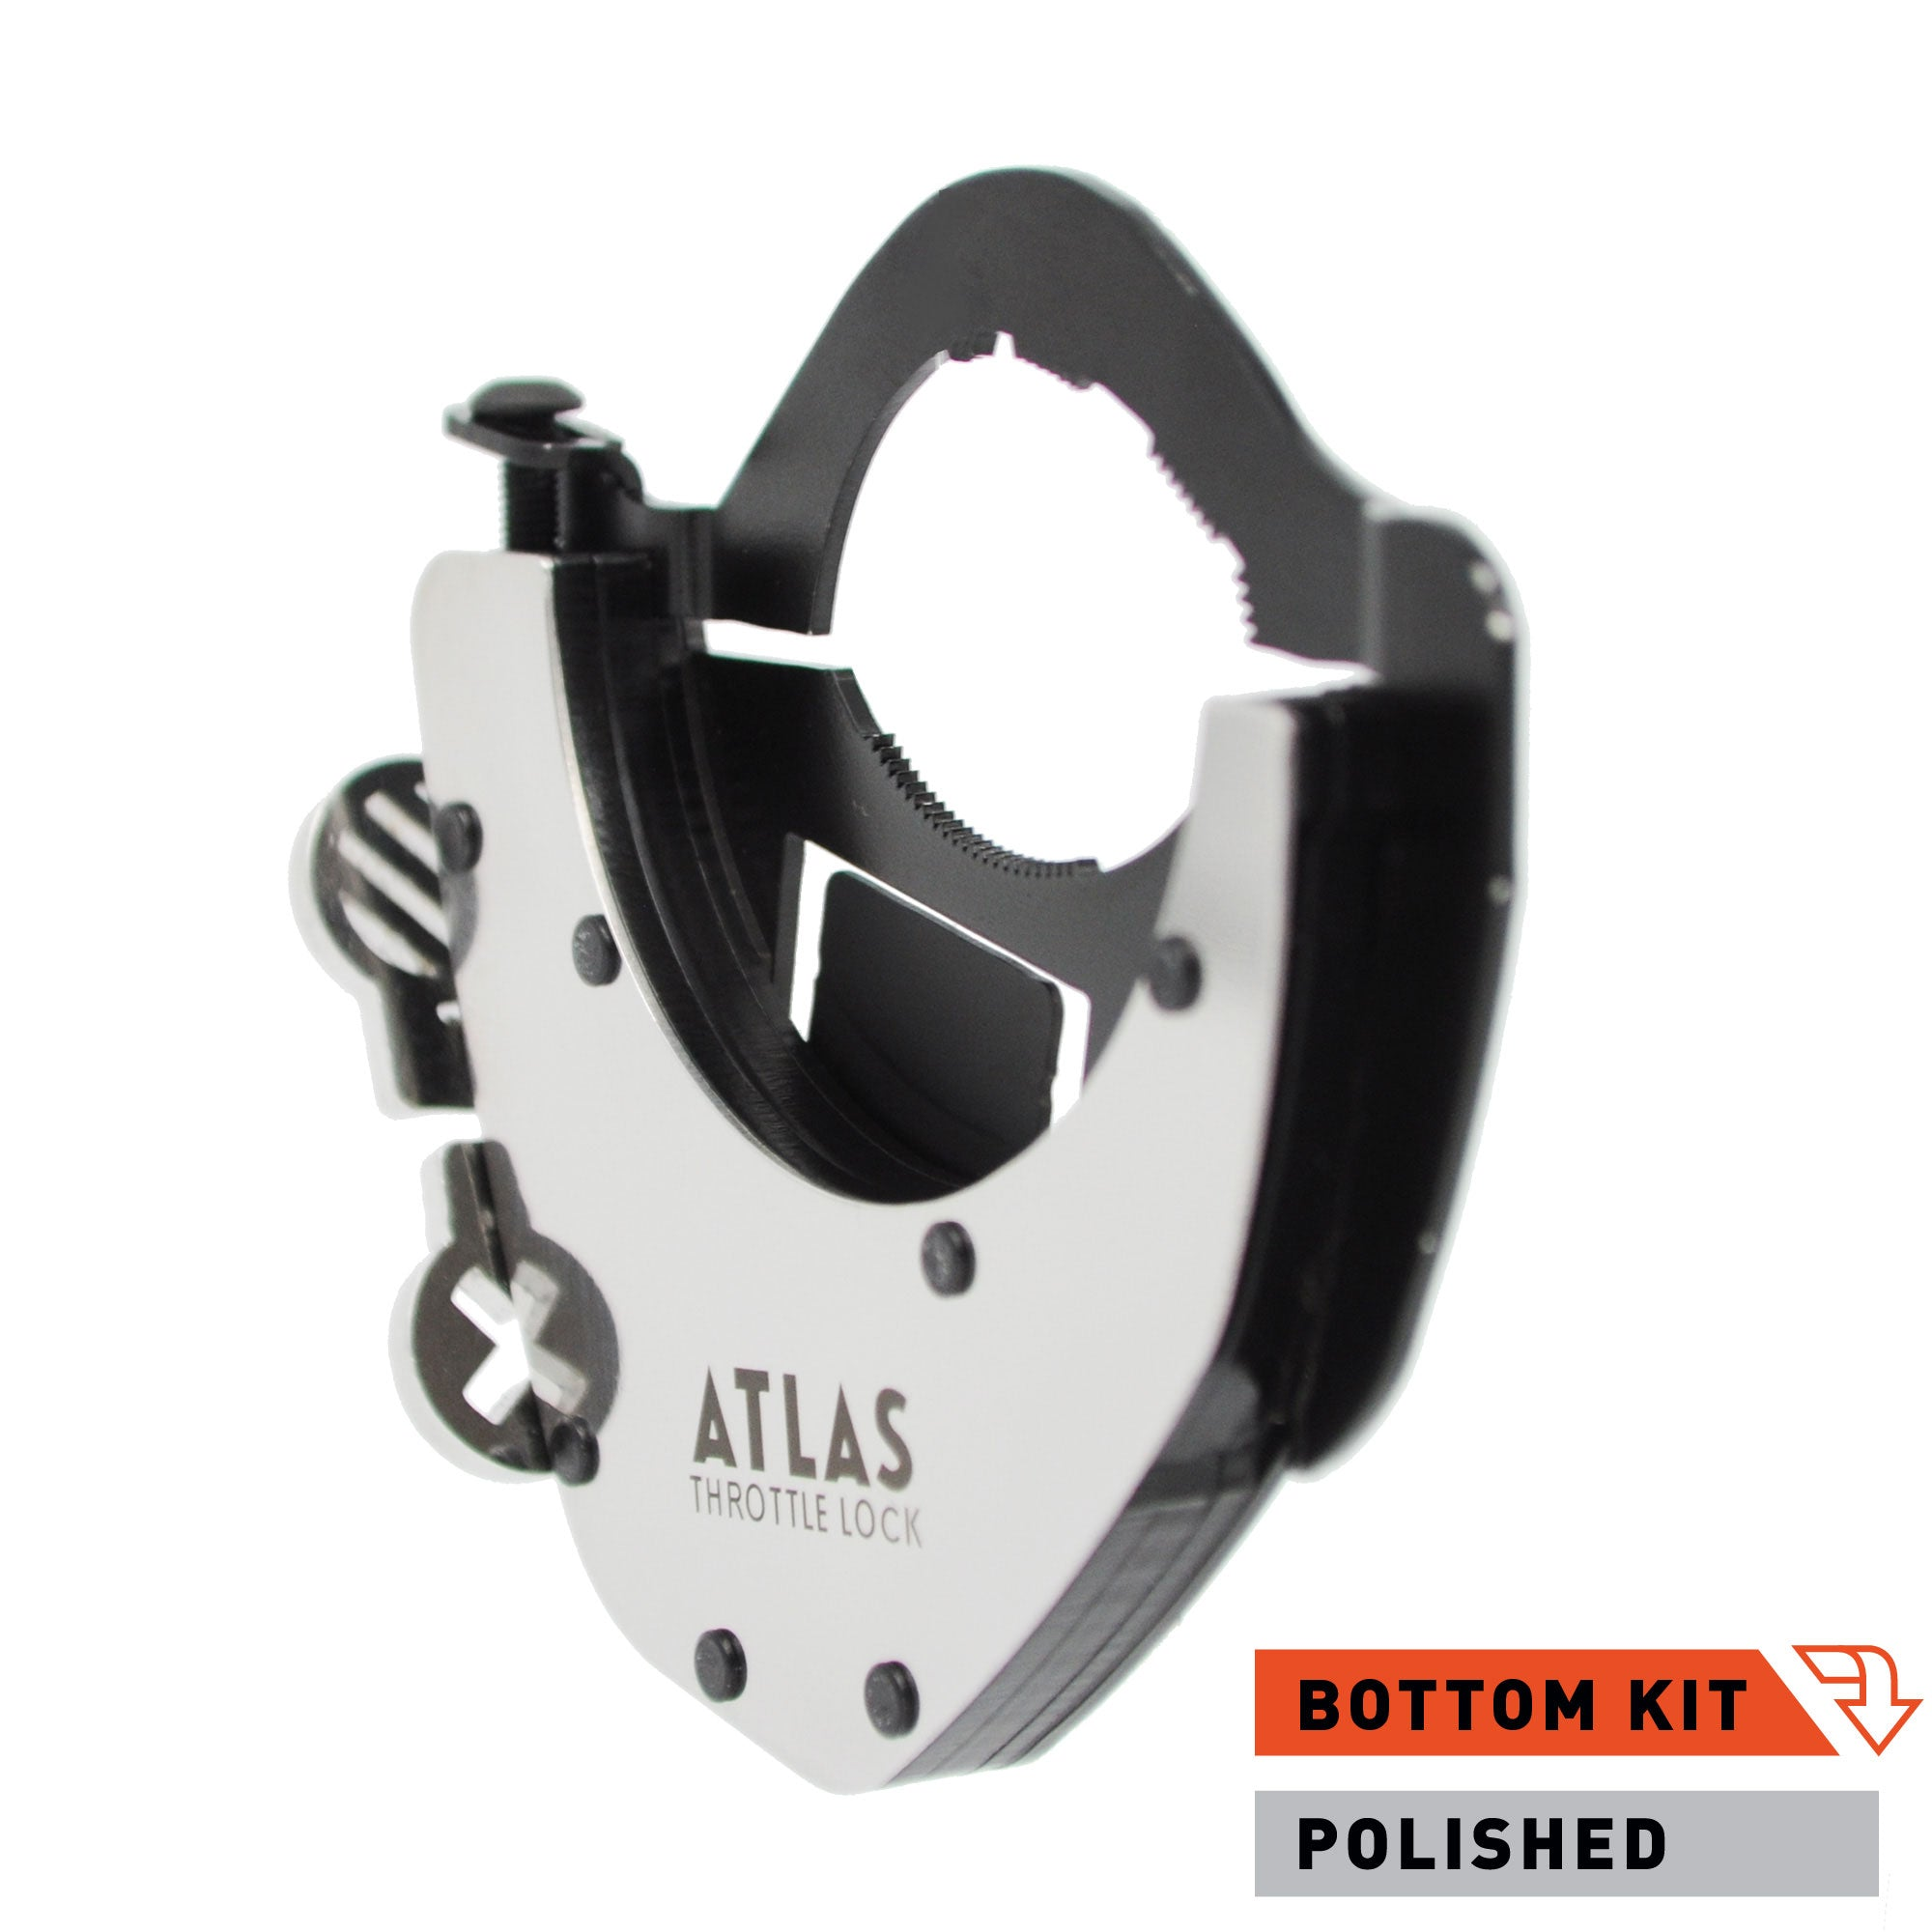 Hyosung Motorcycles - ATLAS Throttle Lock